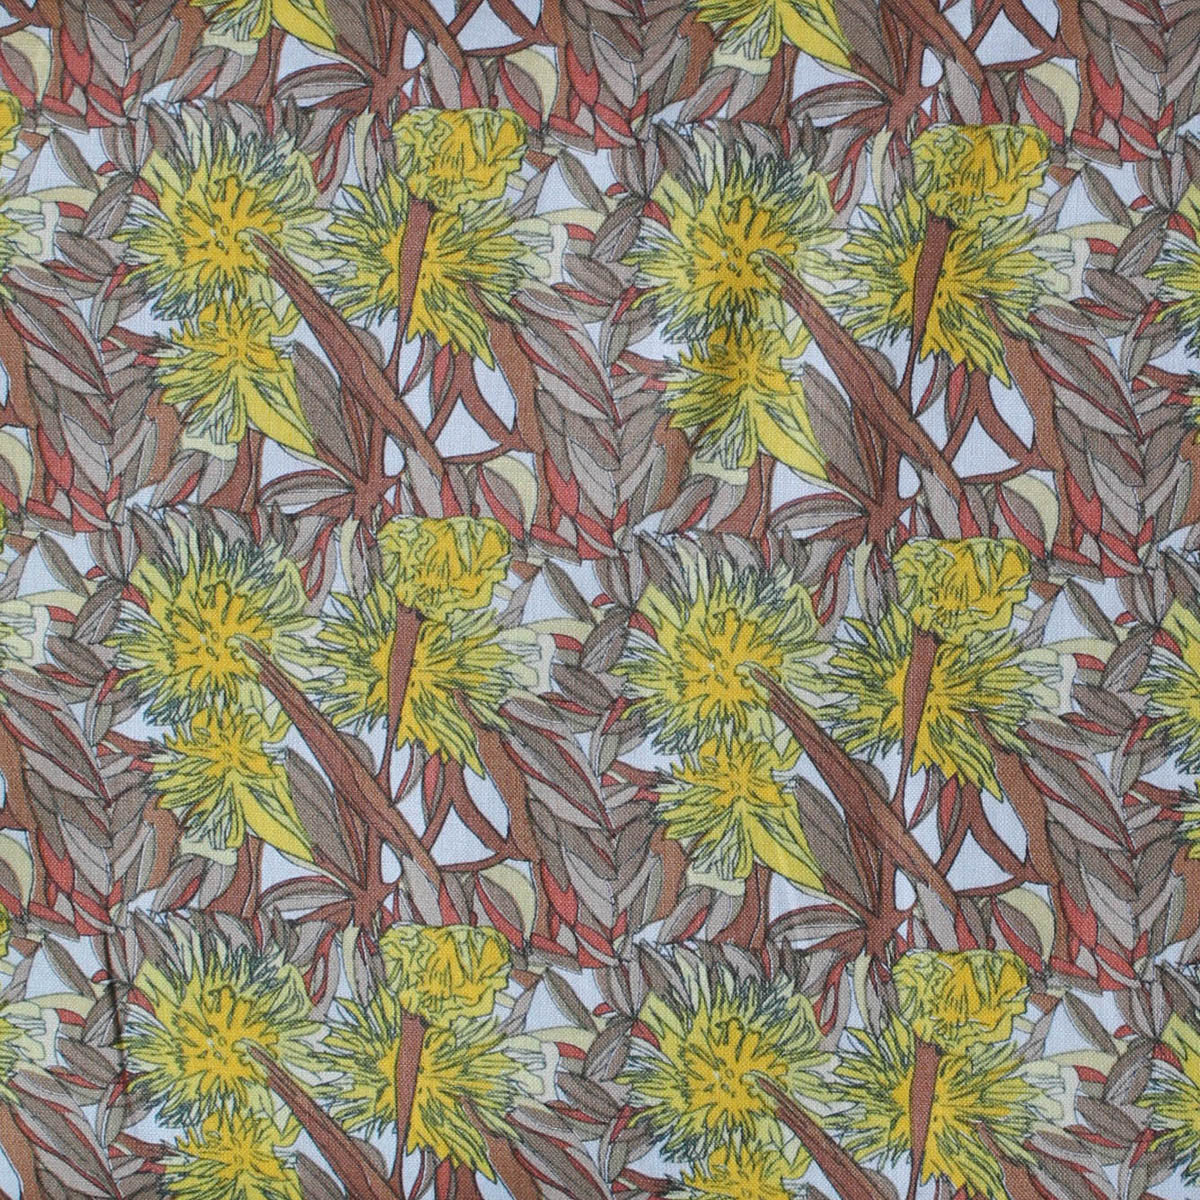 FLOWERING GUM GOLD by Aboriginal Artist ADAM CAMILLERI